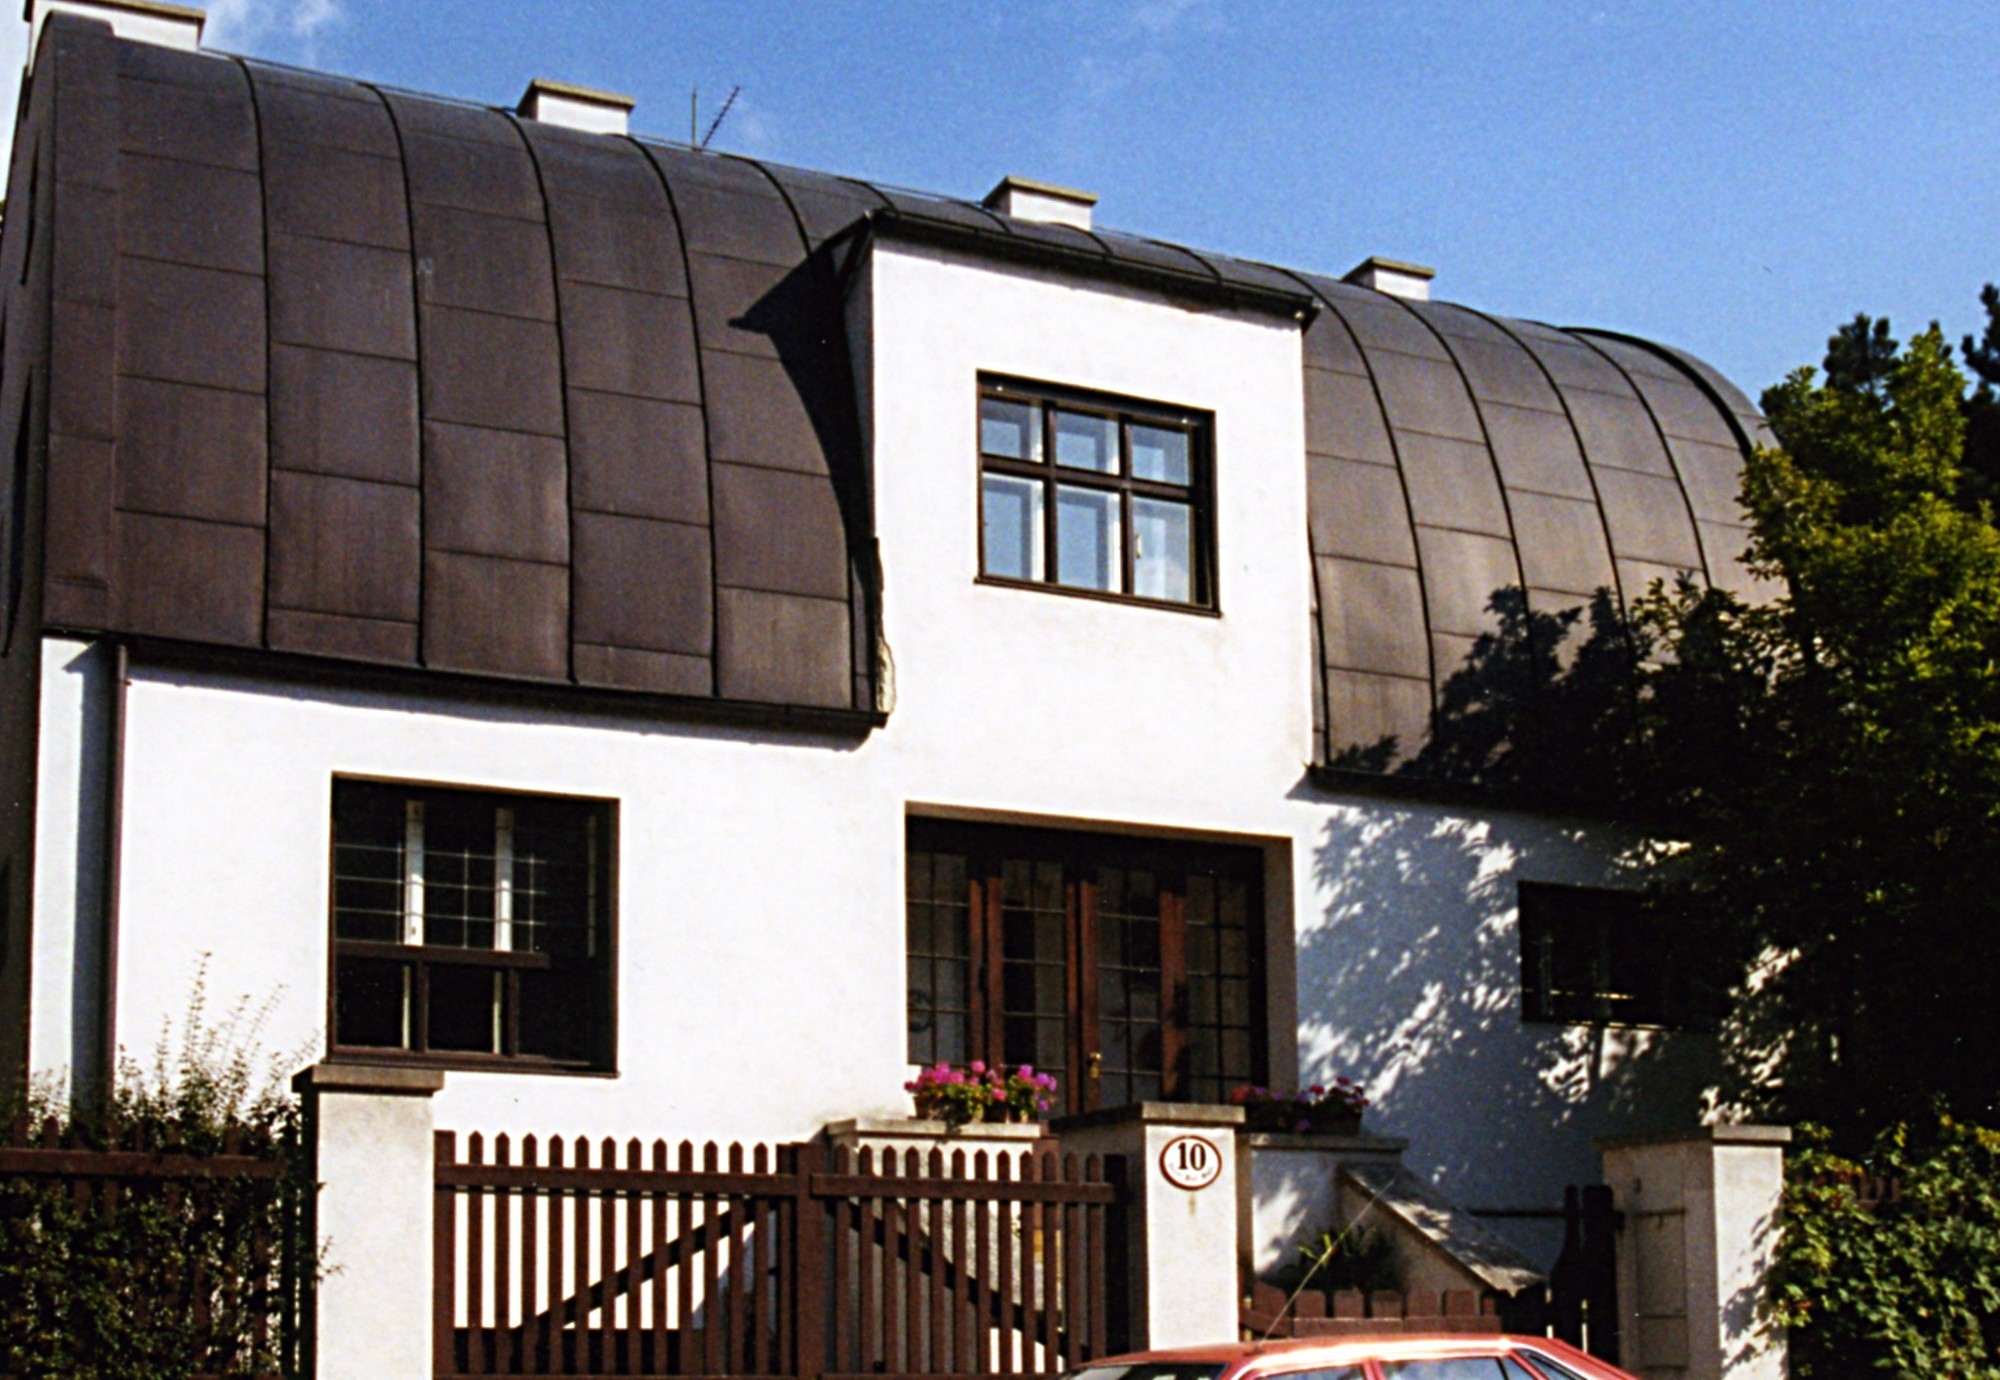 adolf loos Find out where adolf loos ranked on the dezeen hot list – an index of the hottest architects, designers, brands, events and more over the past year.